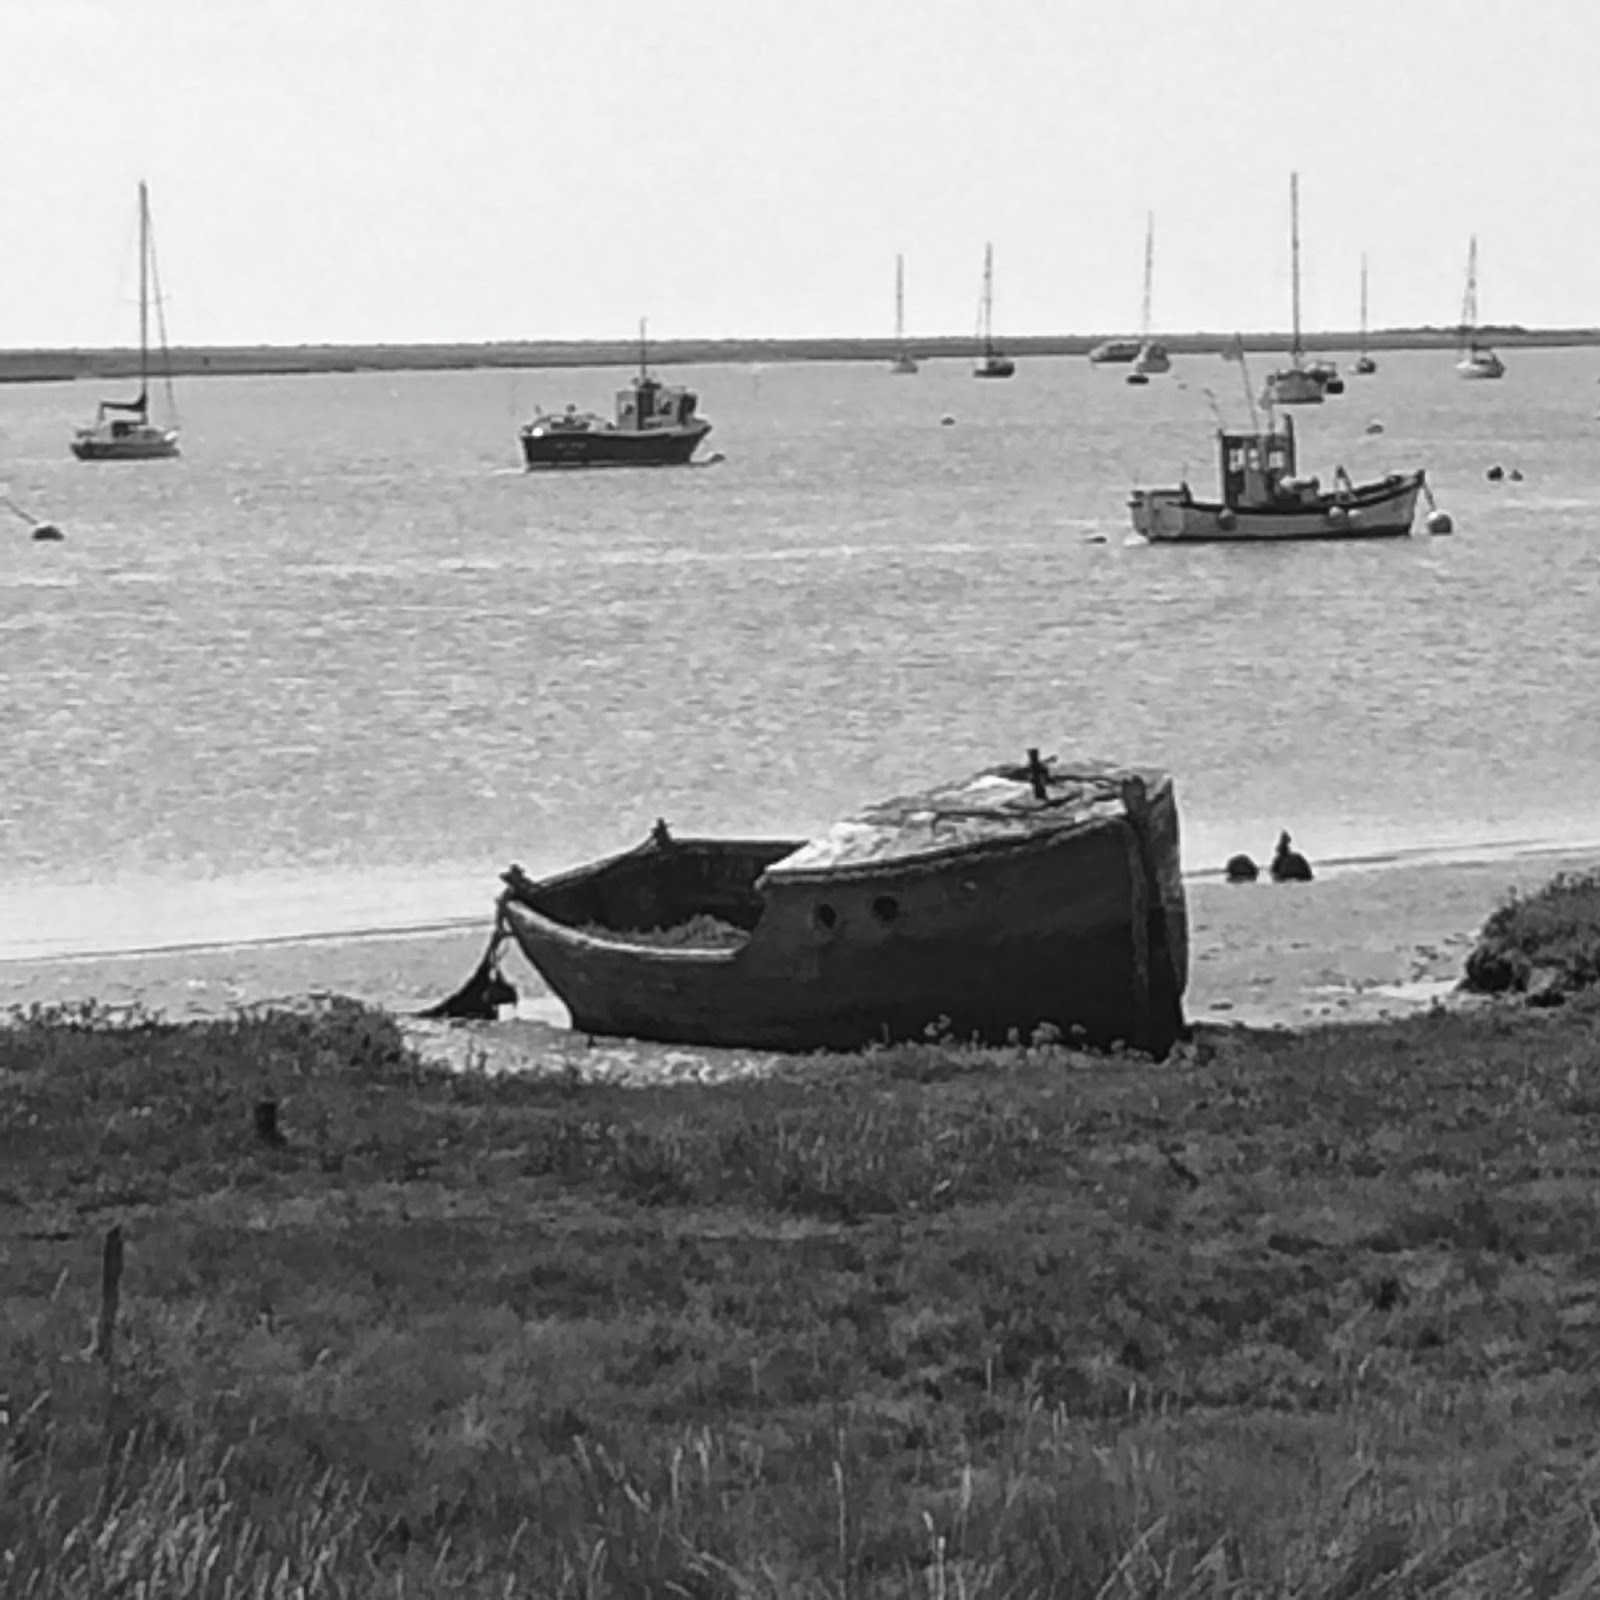 beached boat at Orford in Suffolk, UK